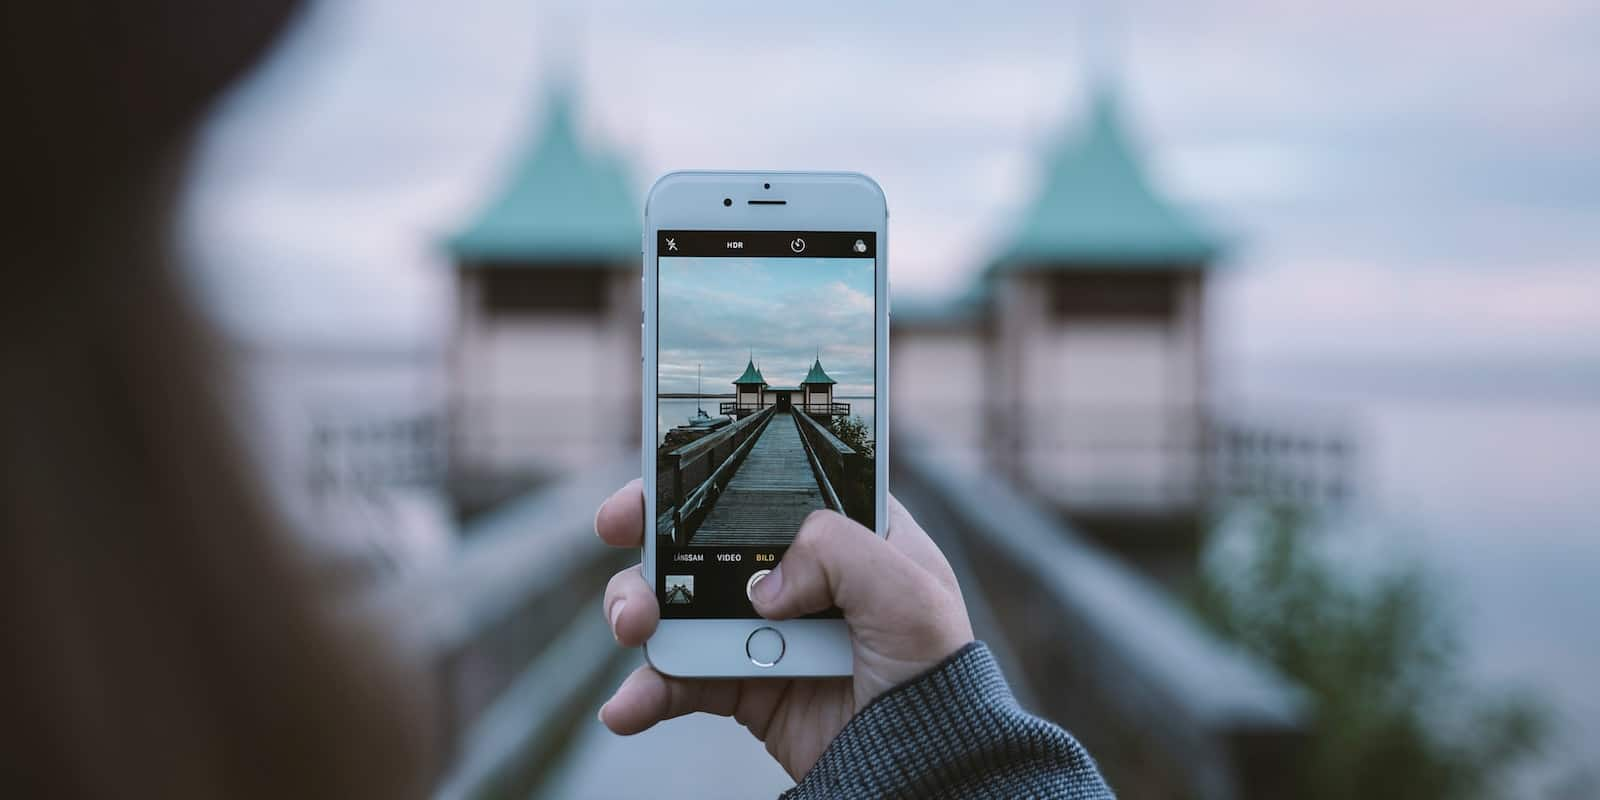 Learn the ins and outs of mobile photography with this massively discounted lesson bundle.